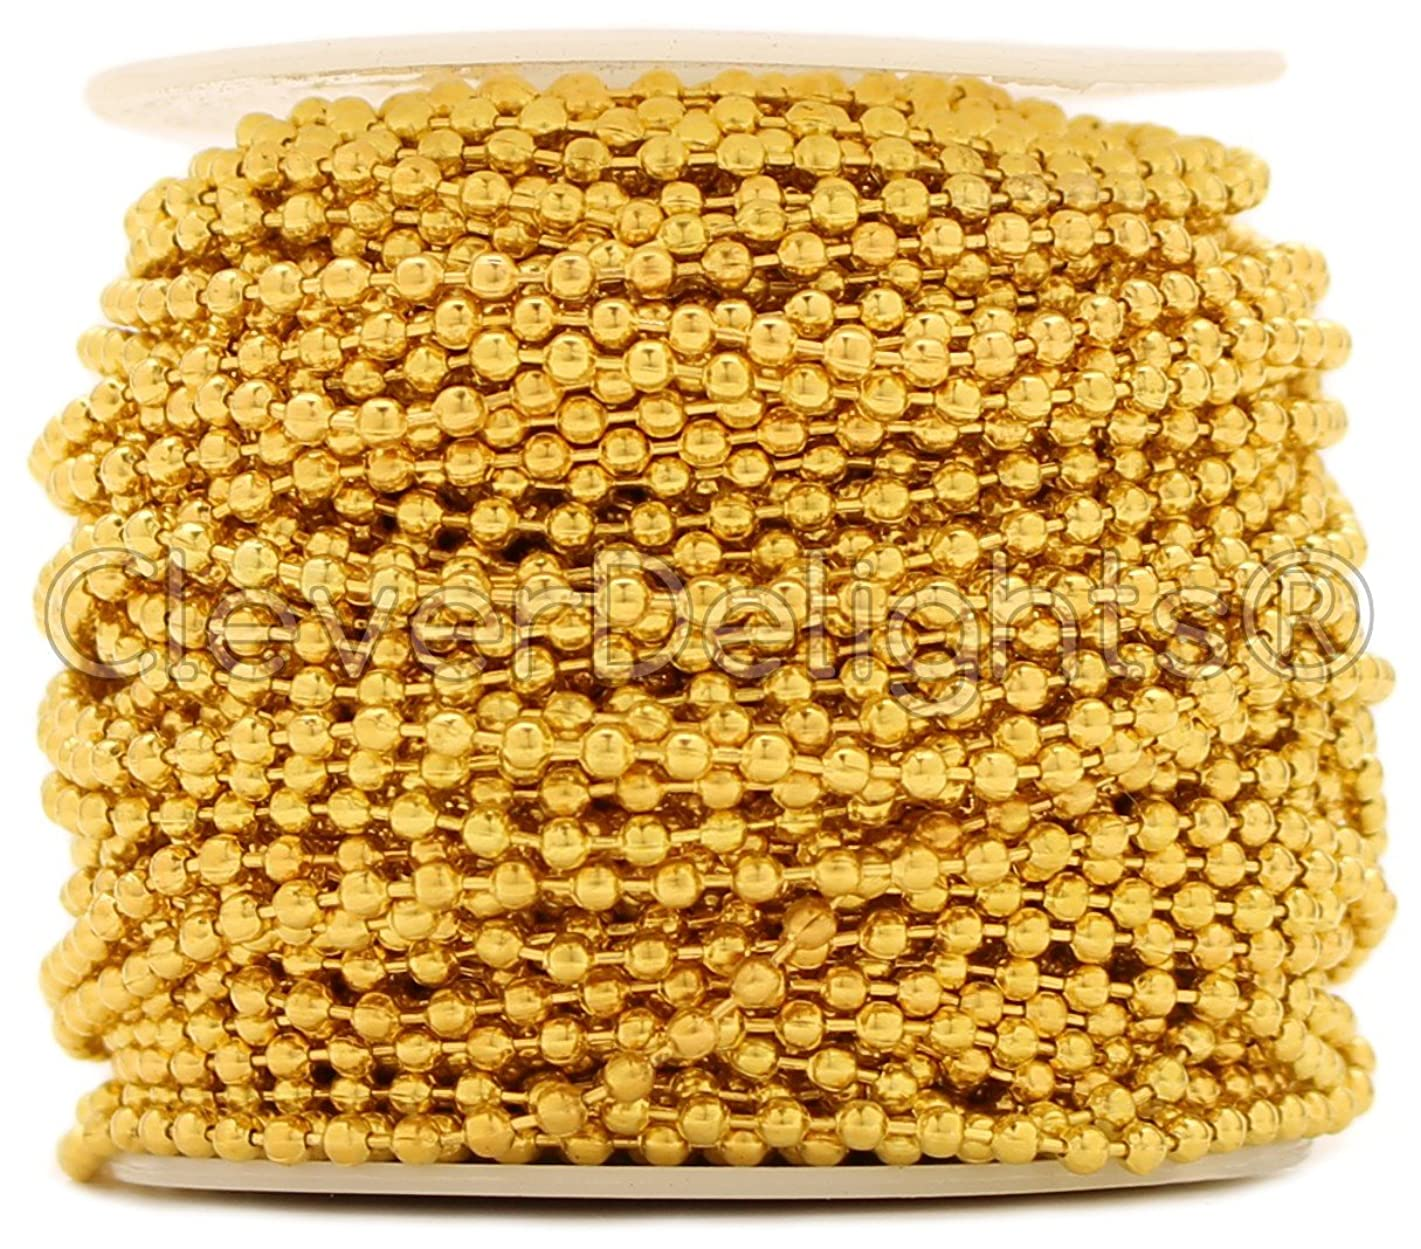 CleverDelights Ball Chain Roll - 30 Feet - Gold Color - 2.4mm Ball - #3 Size